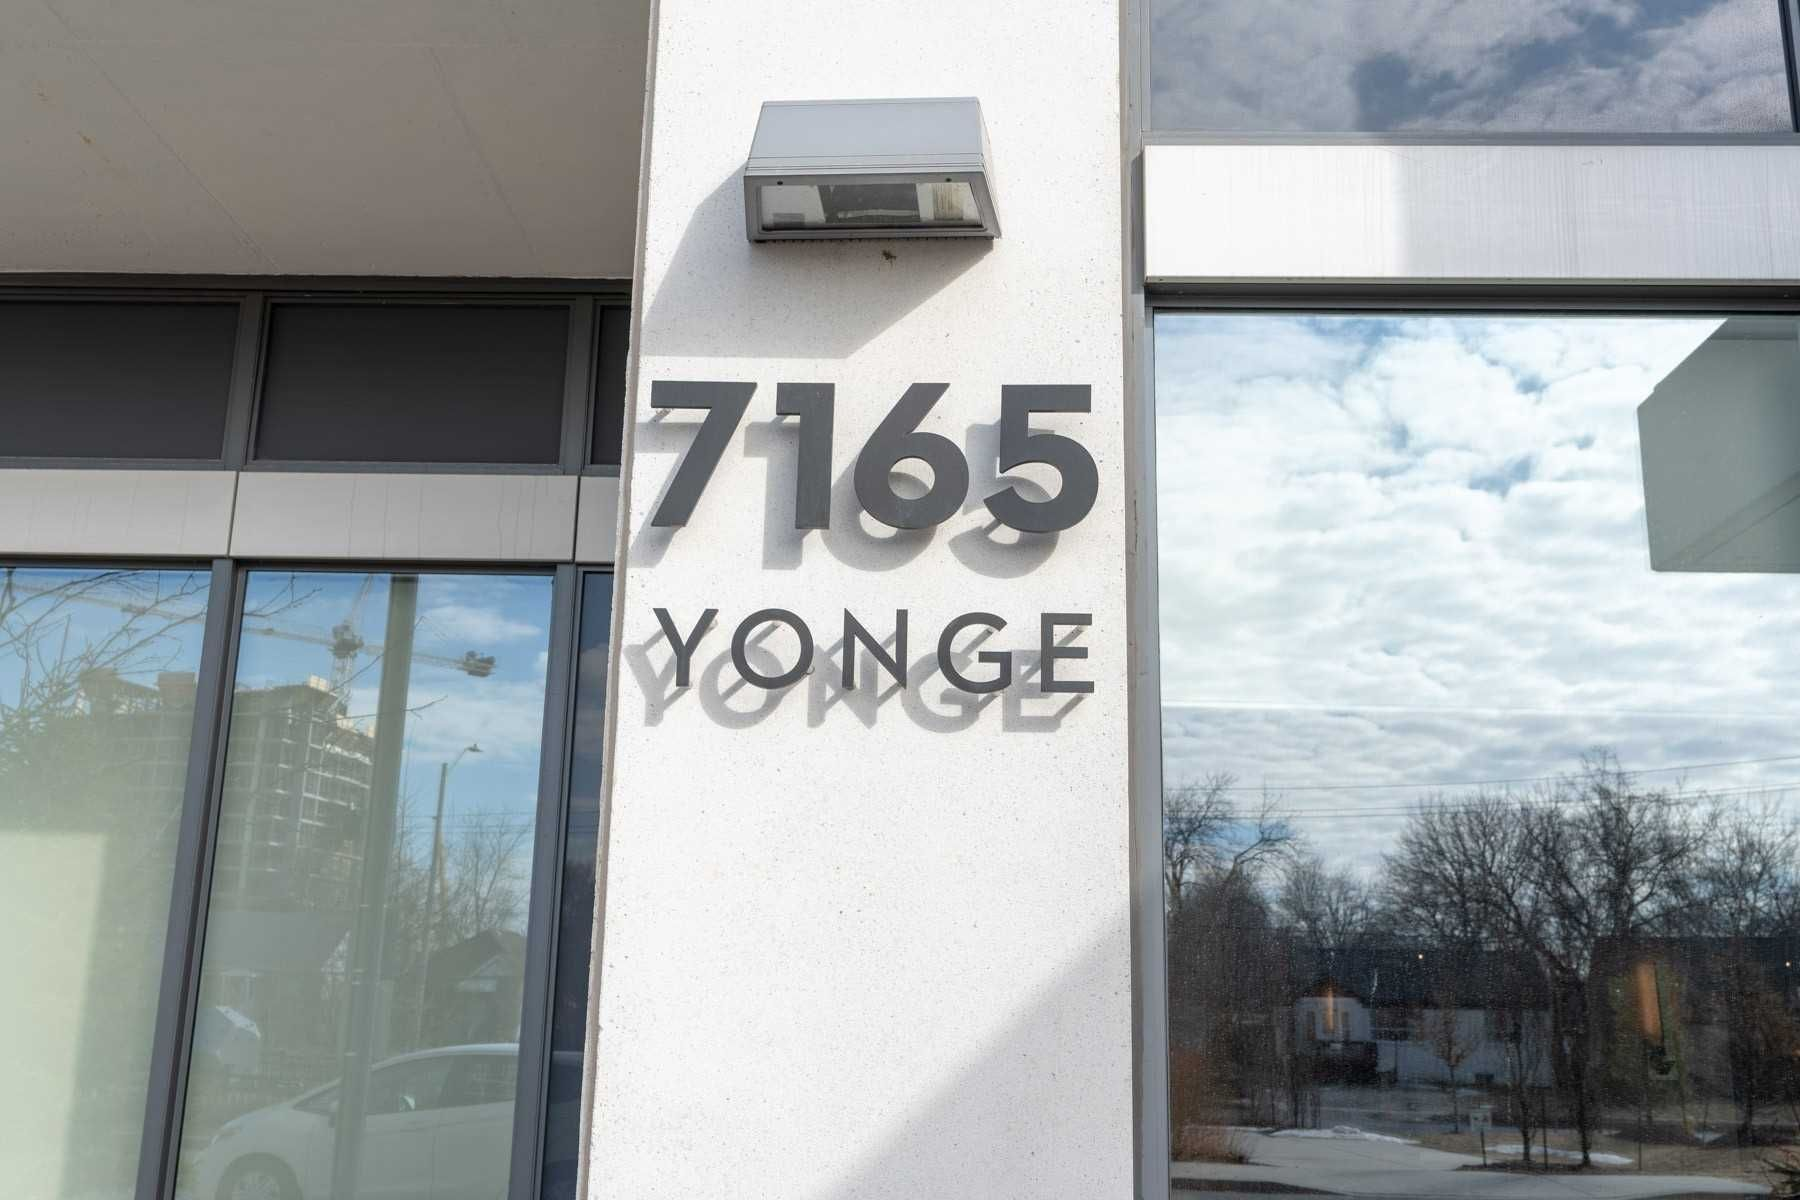 7165 Yonge St, unit Ph305 for rent in Toronto - image #2